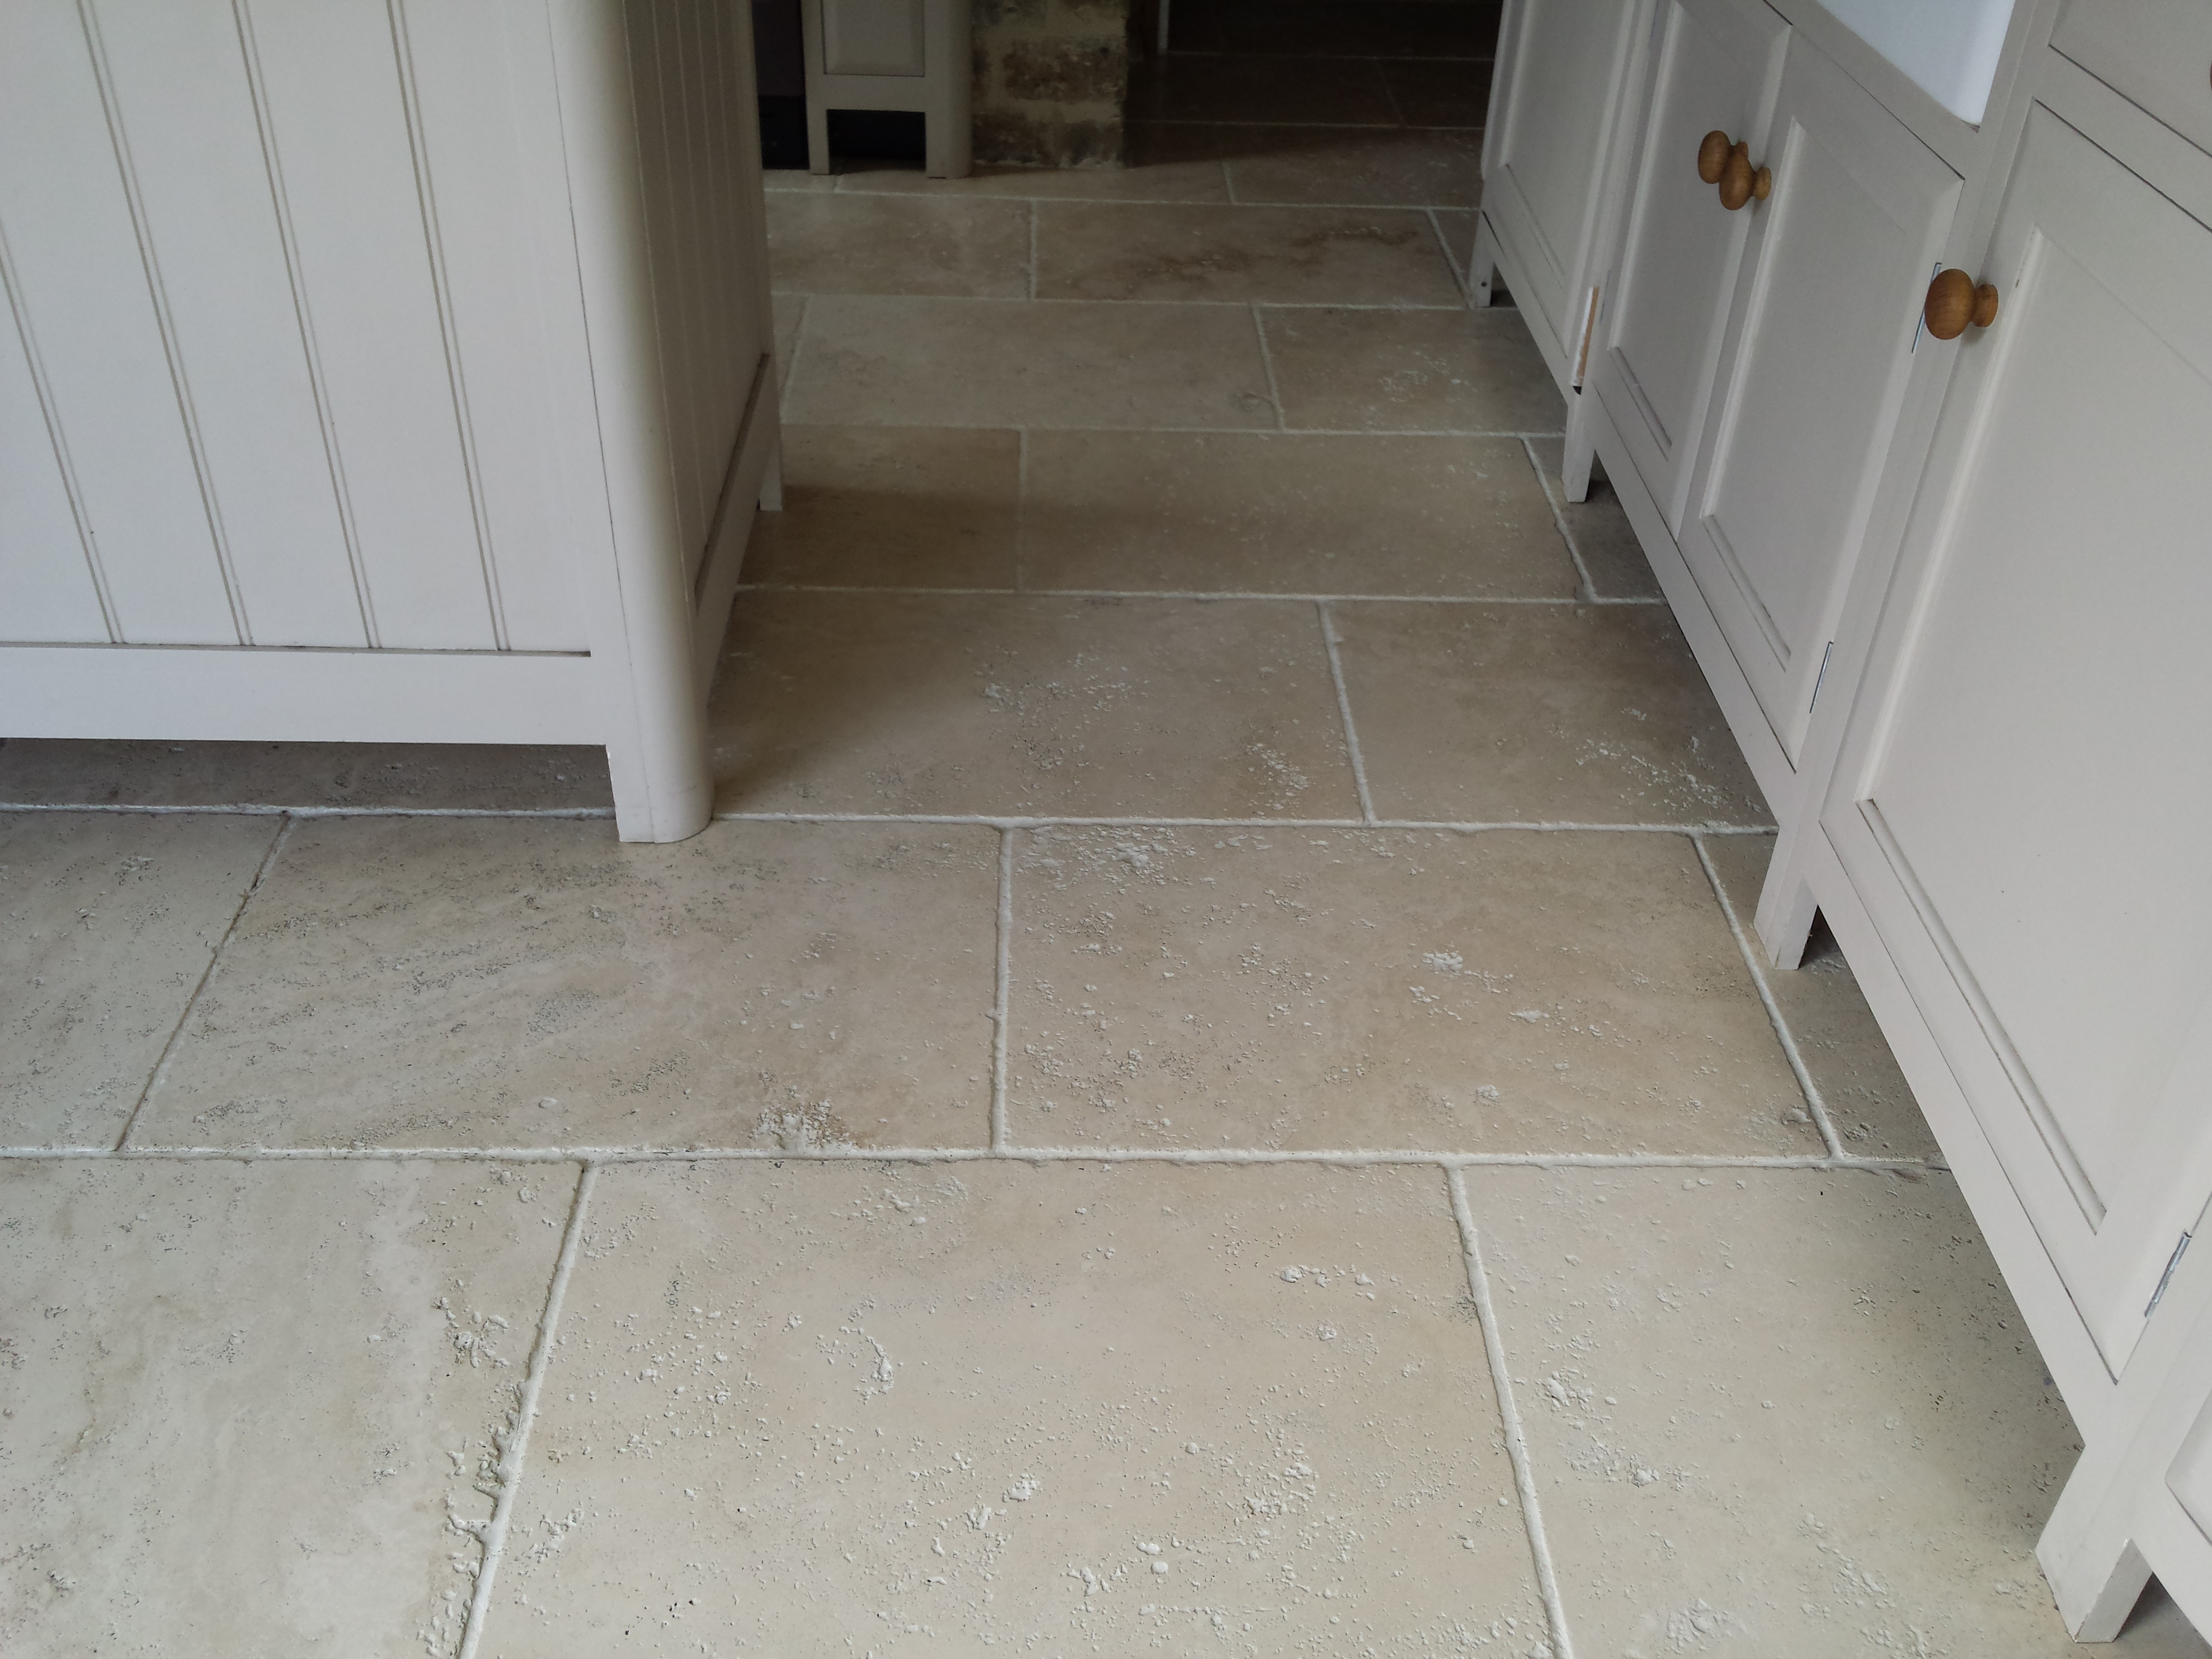 floor travertine marble tx frisco tile cleaning polishing flooring